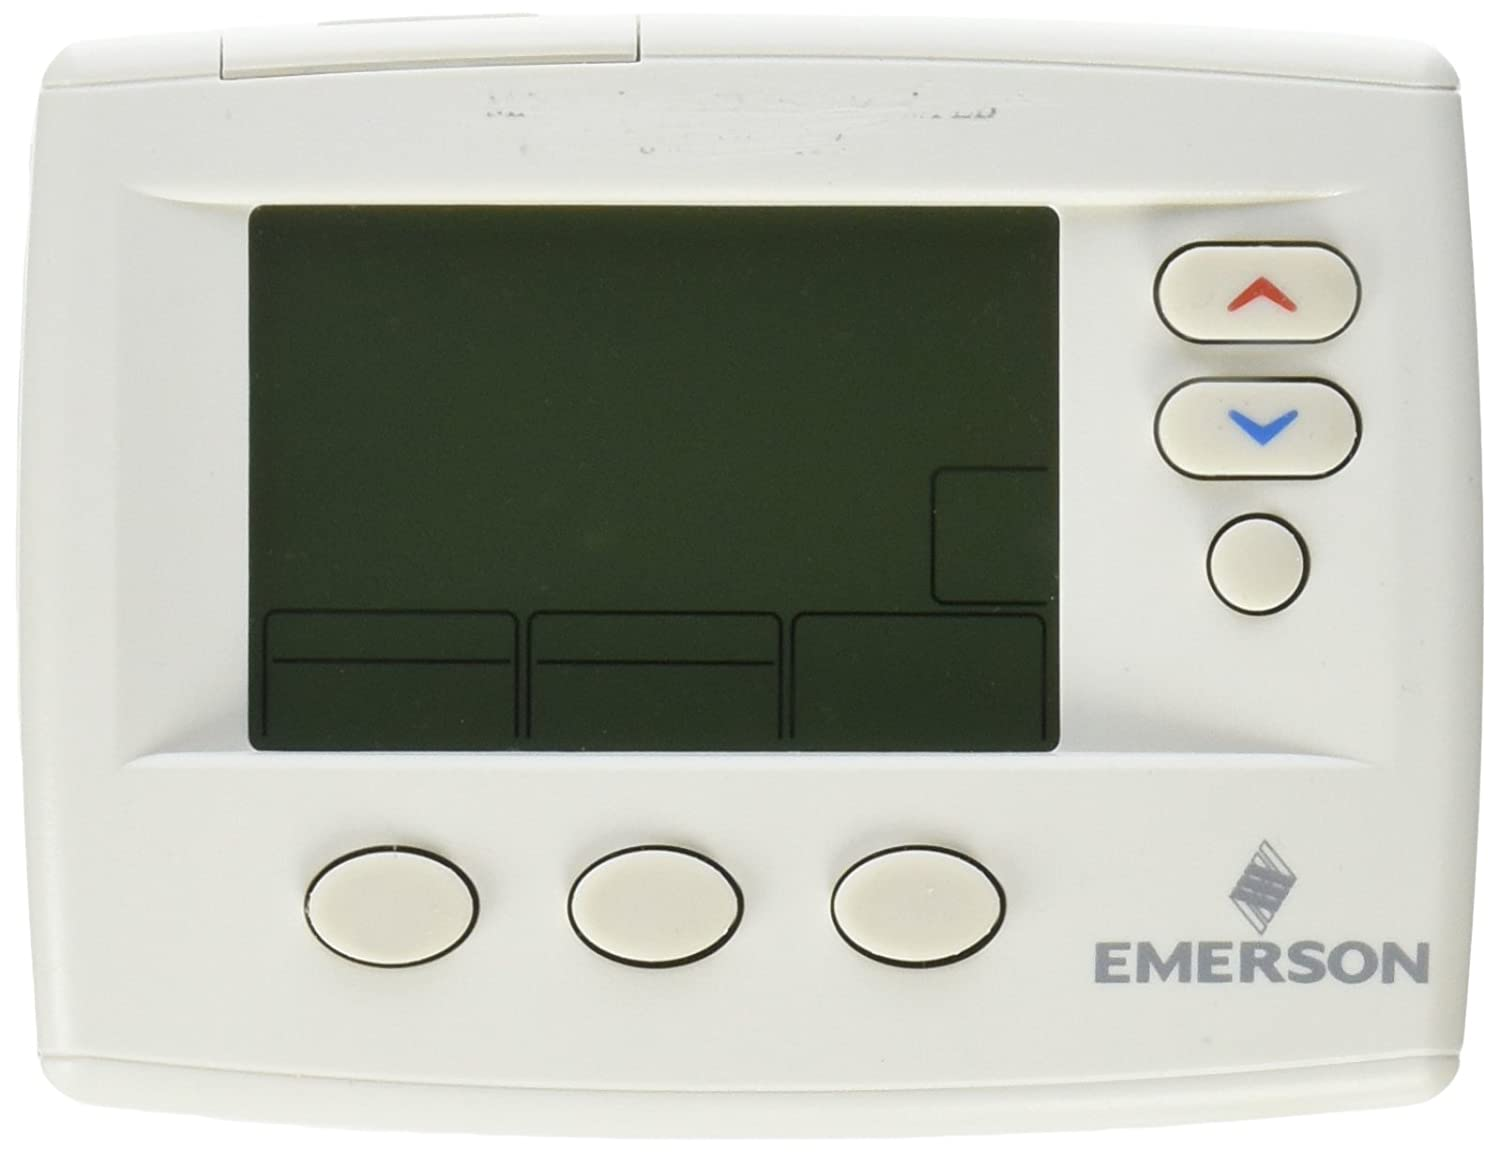 Emerson 1F80-0471 5-1-1 Day Programmable Thermostat for Single-Stage  Systems - Programmable Household Thermostats - Amazon.com